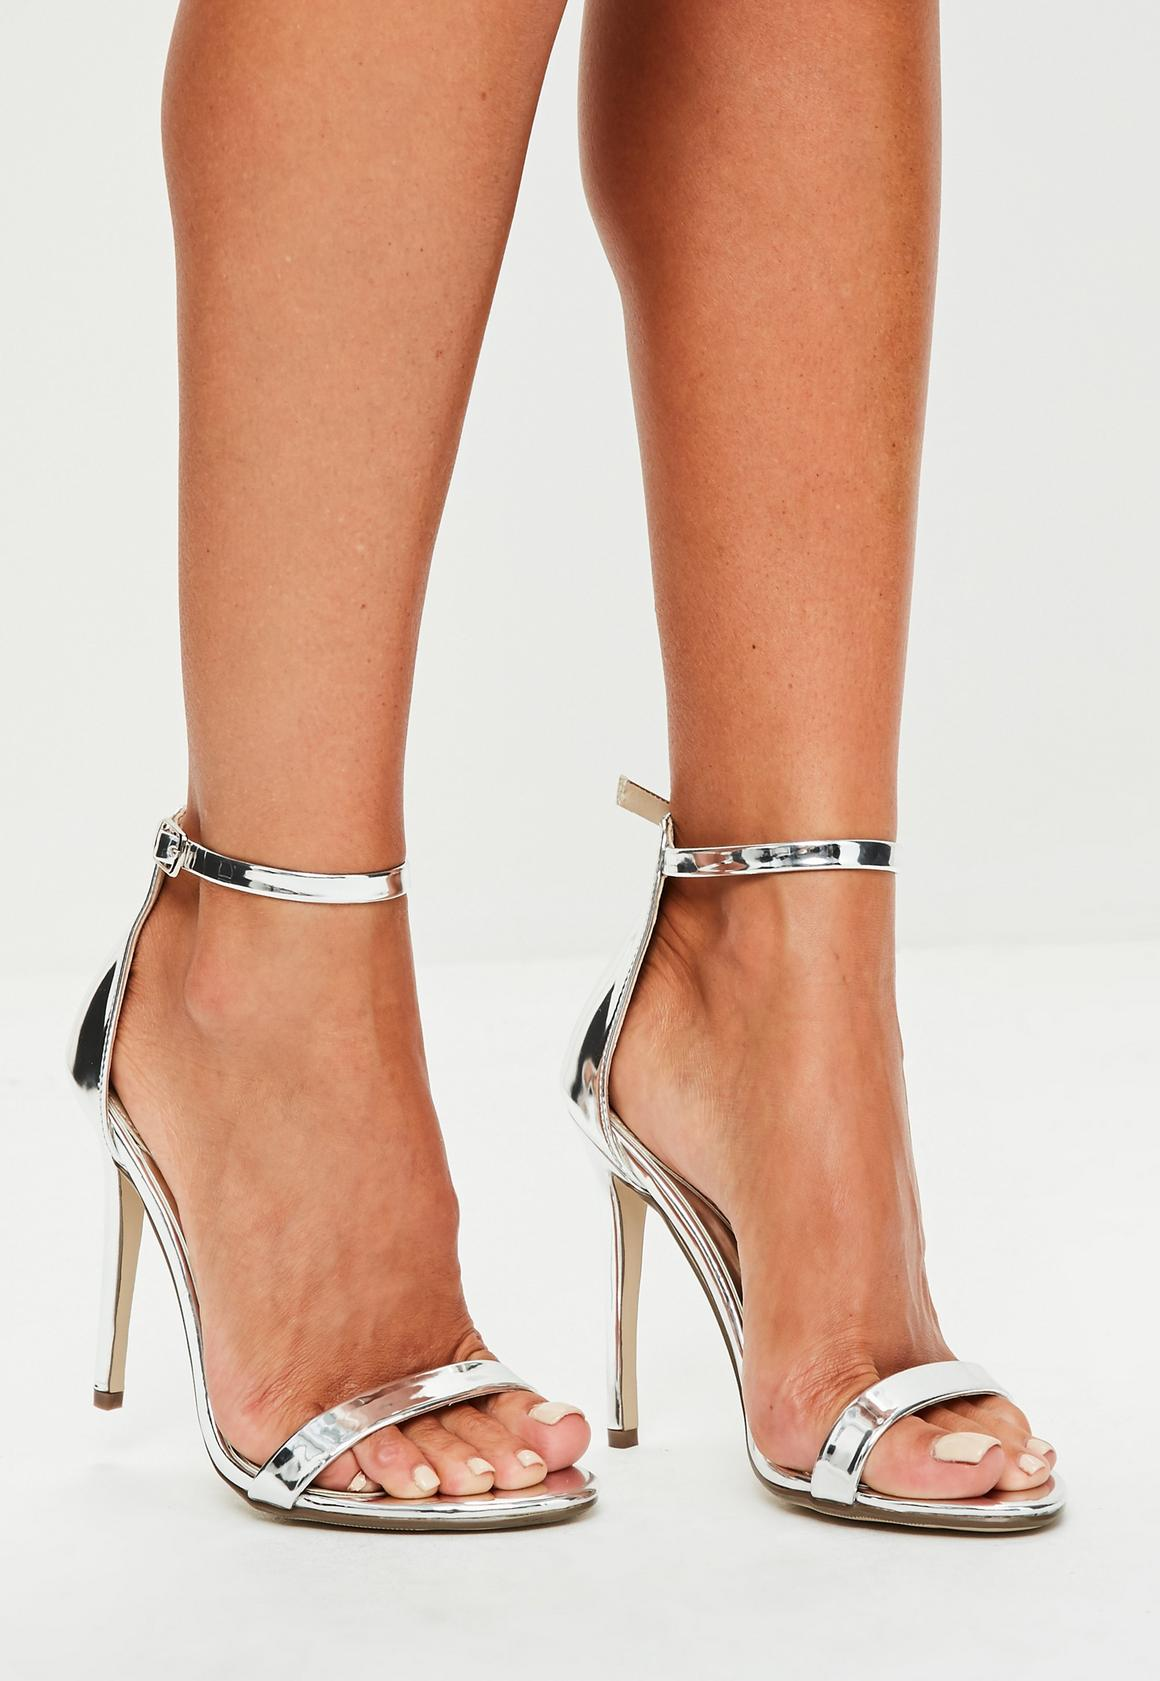 Two Inch Heel Pumps